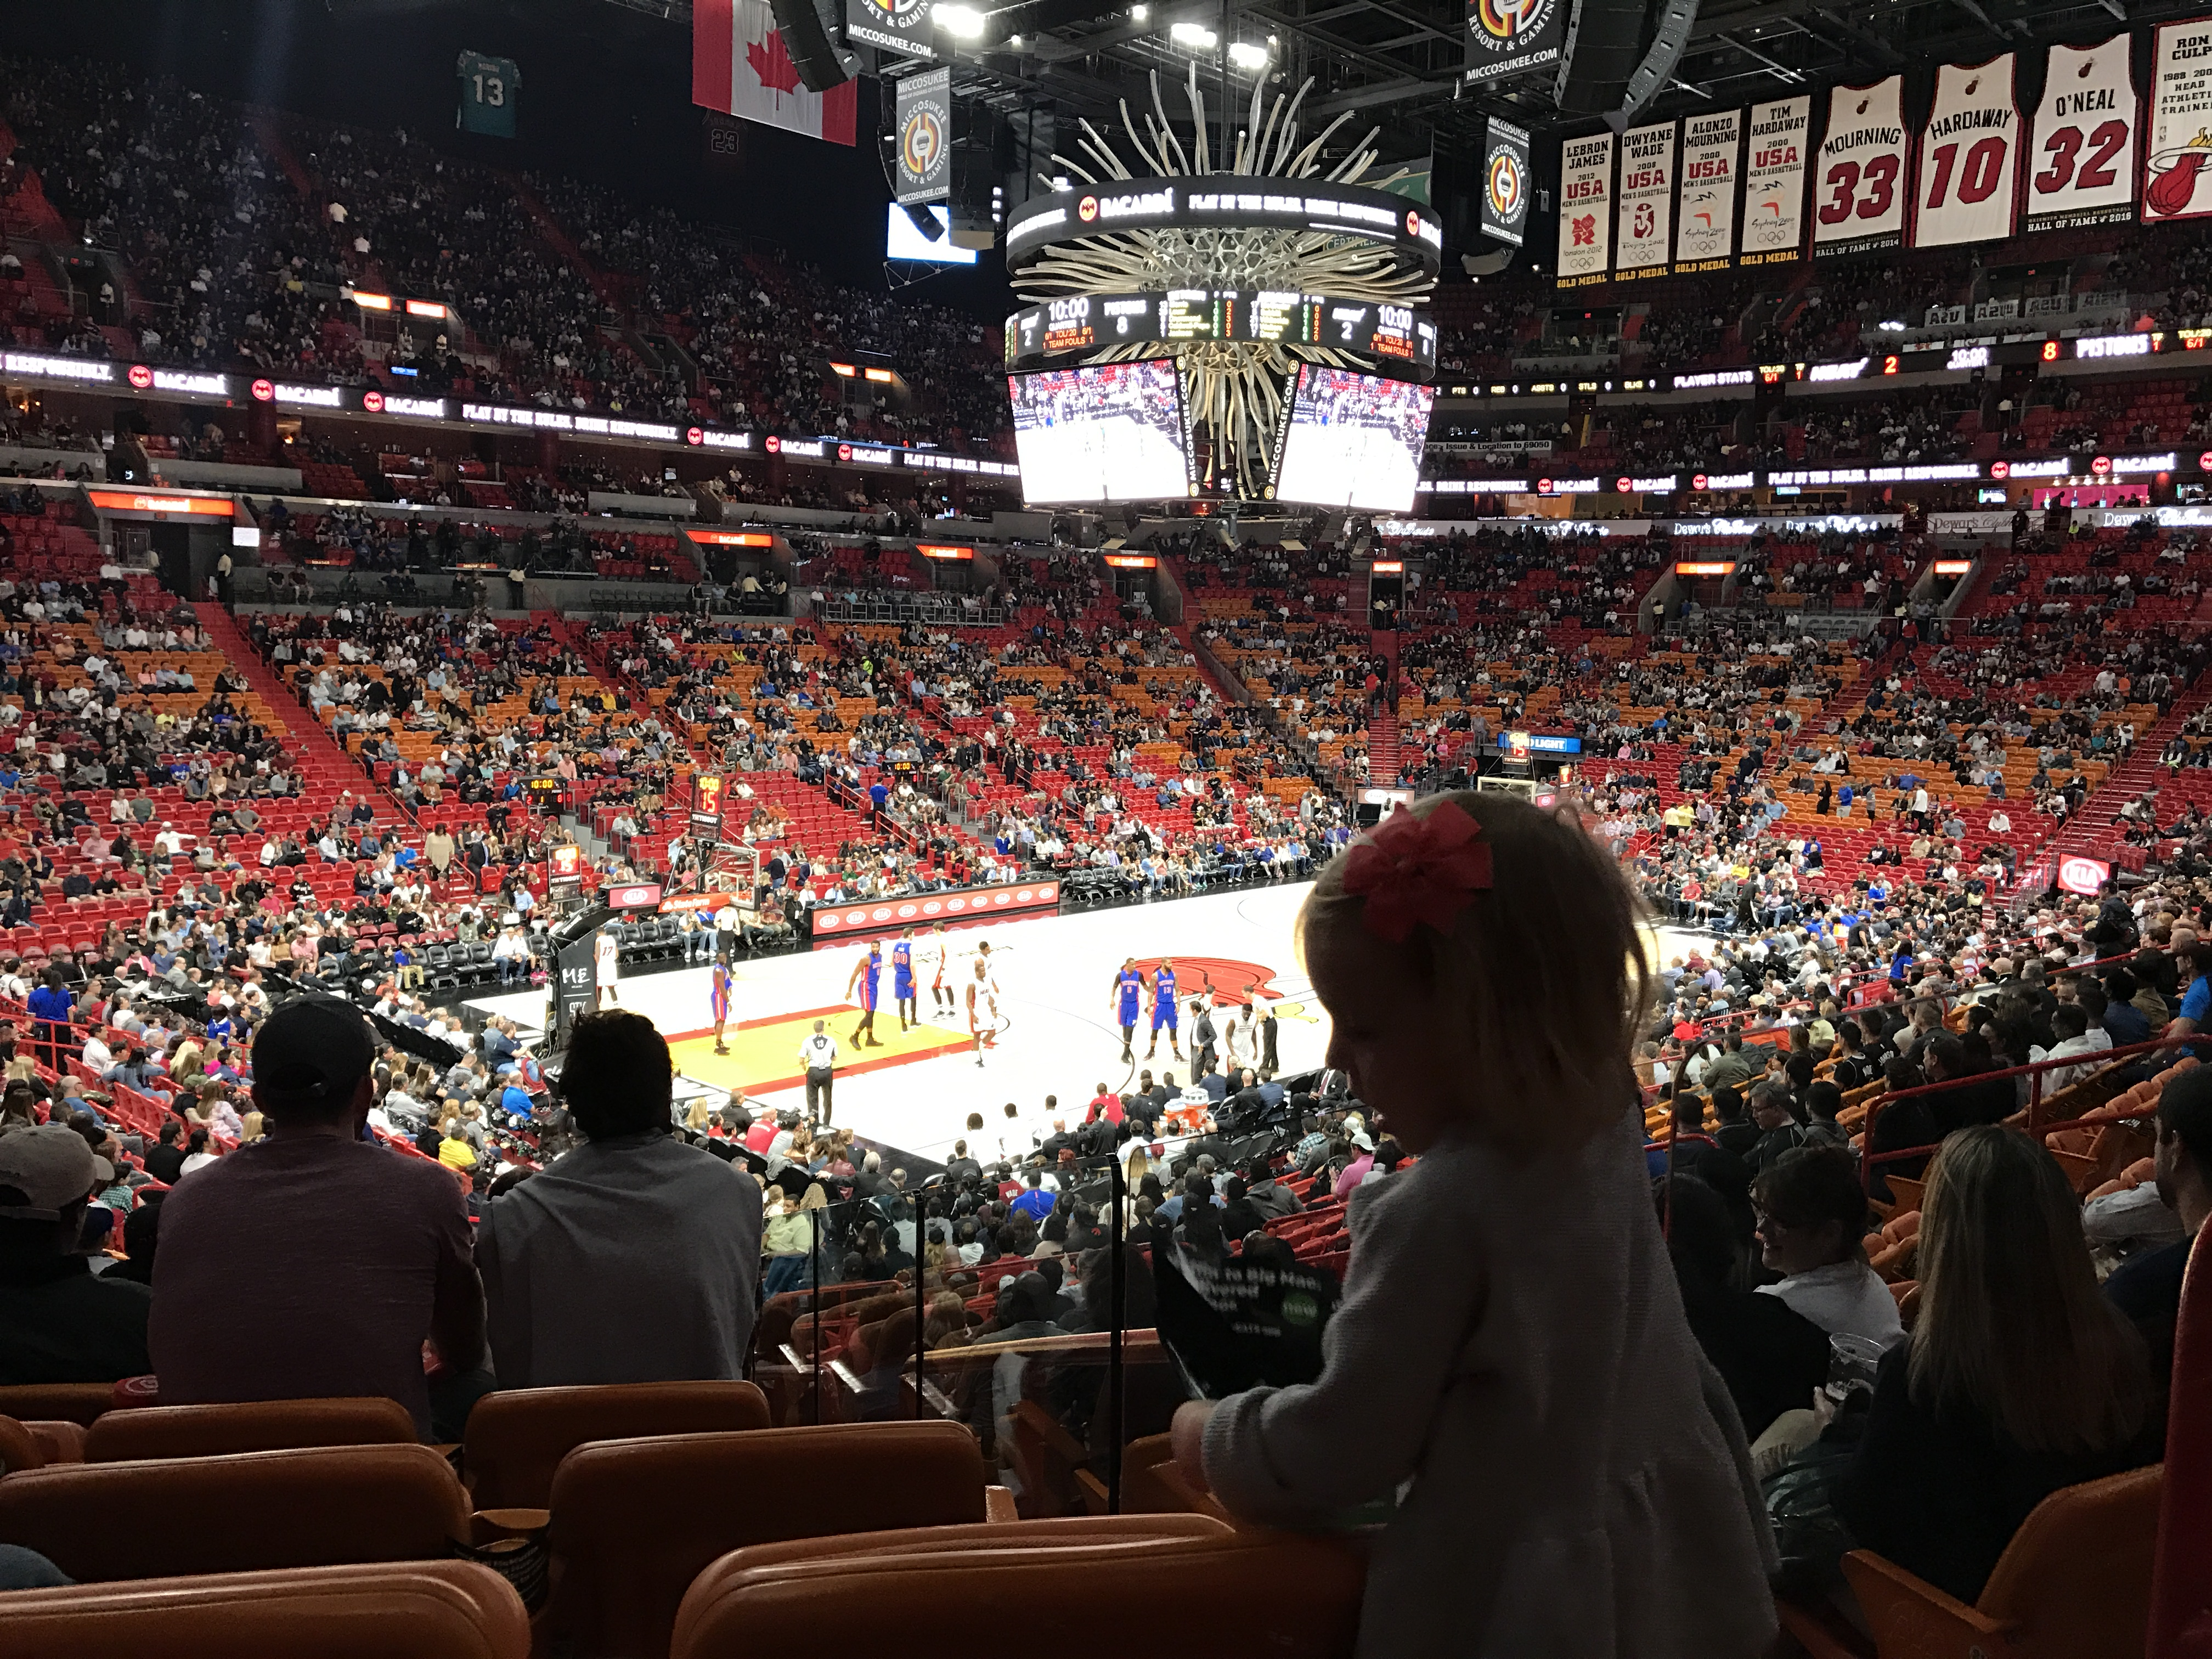 Americana Airline Arena - Heat Miami